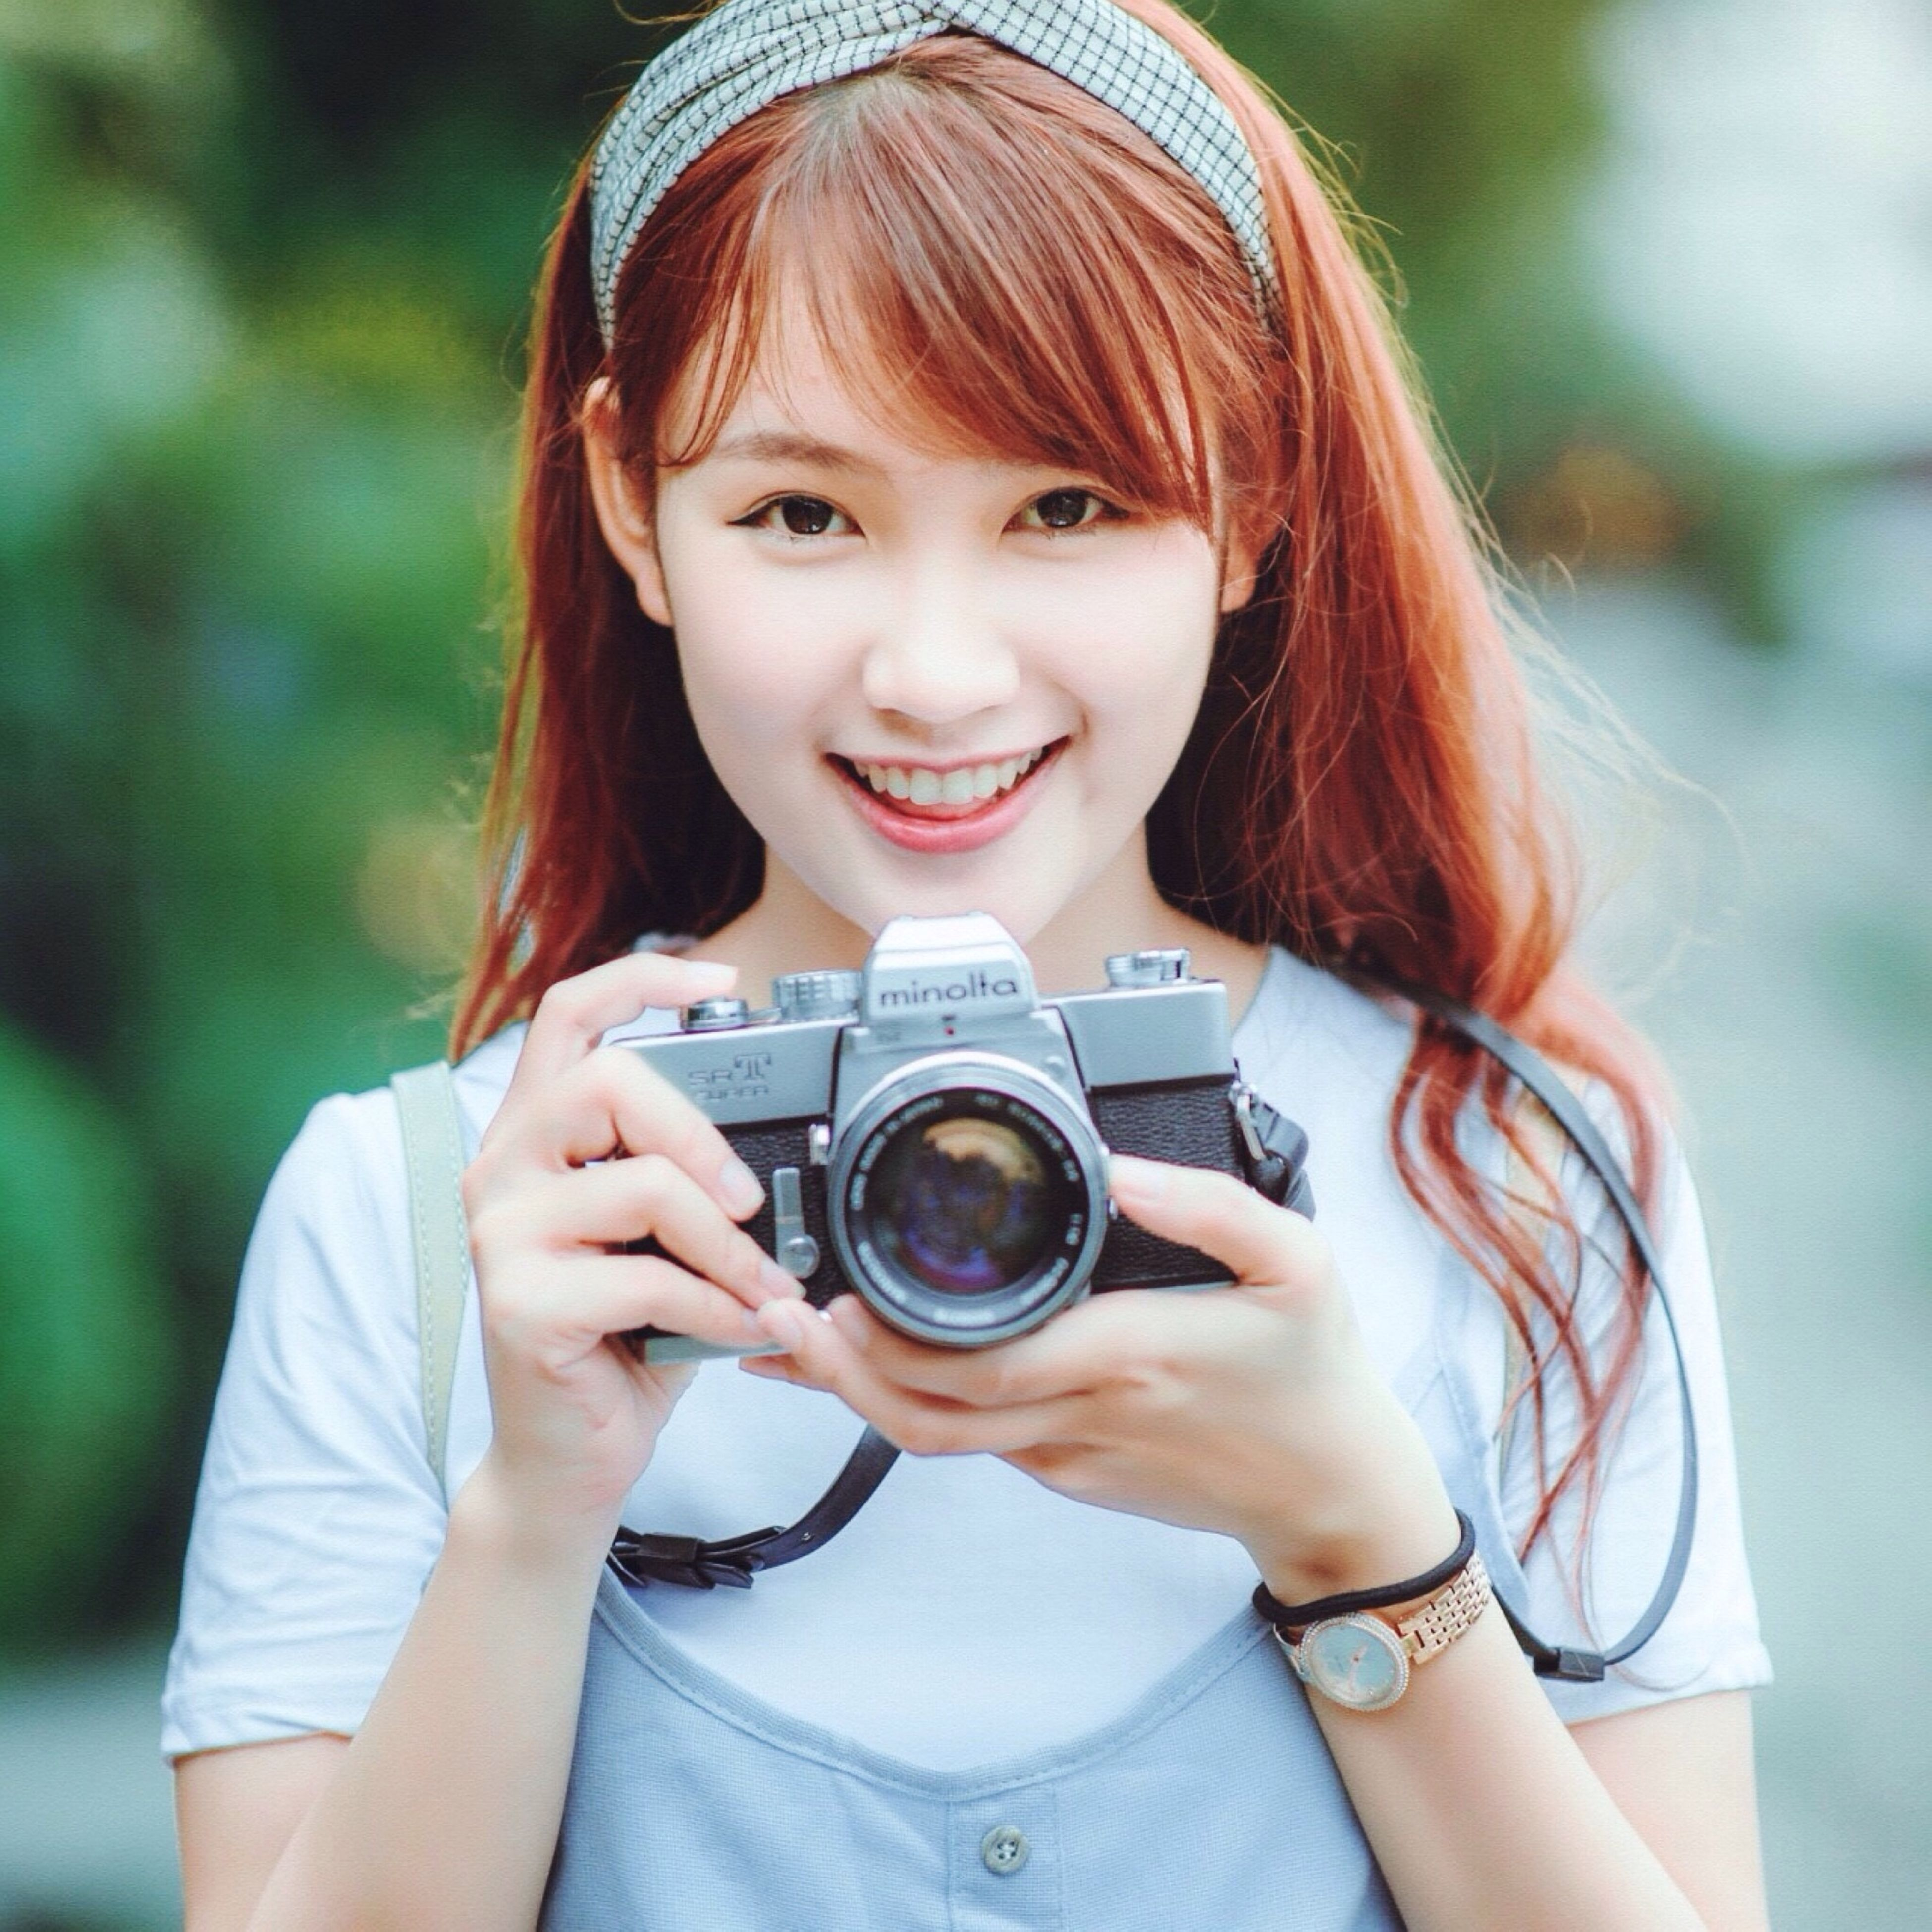 lifestyles, leisure activity, holding, person, sunglasses, looking at camera, casual clothing, young adult, portrait, focus on foreground, front view, photography themes, smiling, technology, photographing, refreshment, happiness, camera - photographic equipment